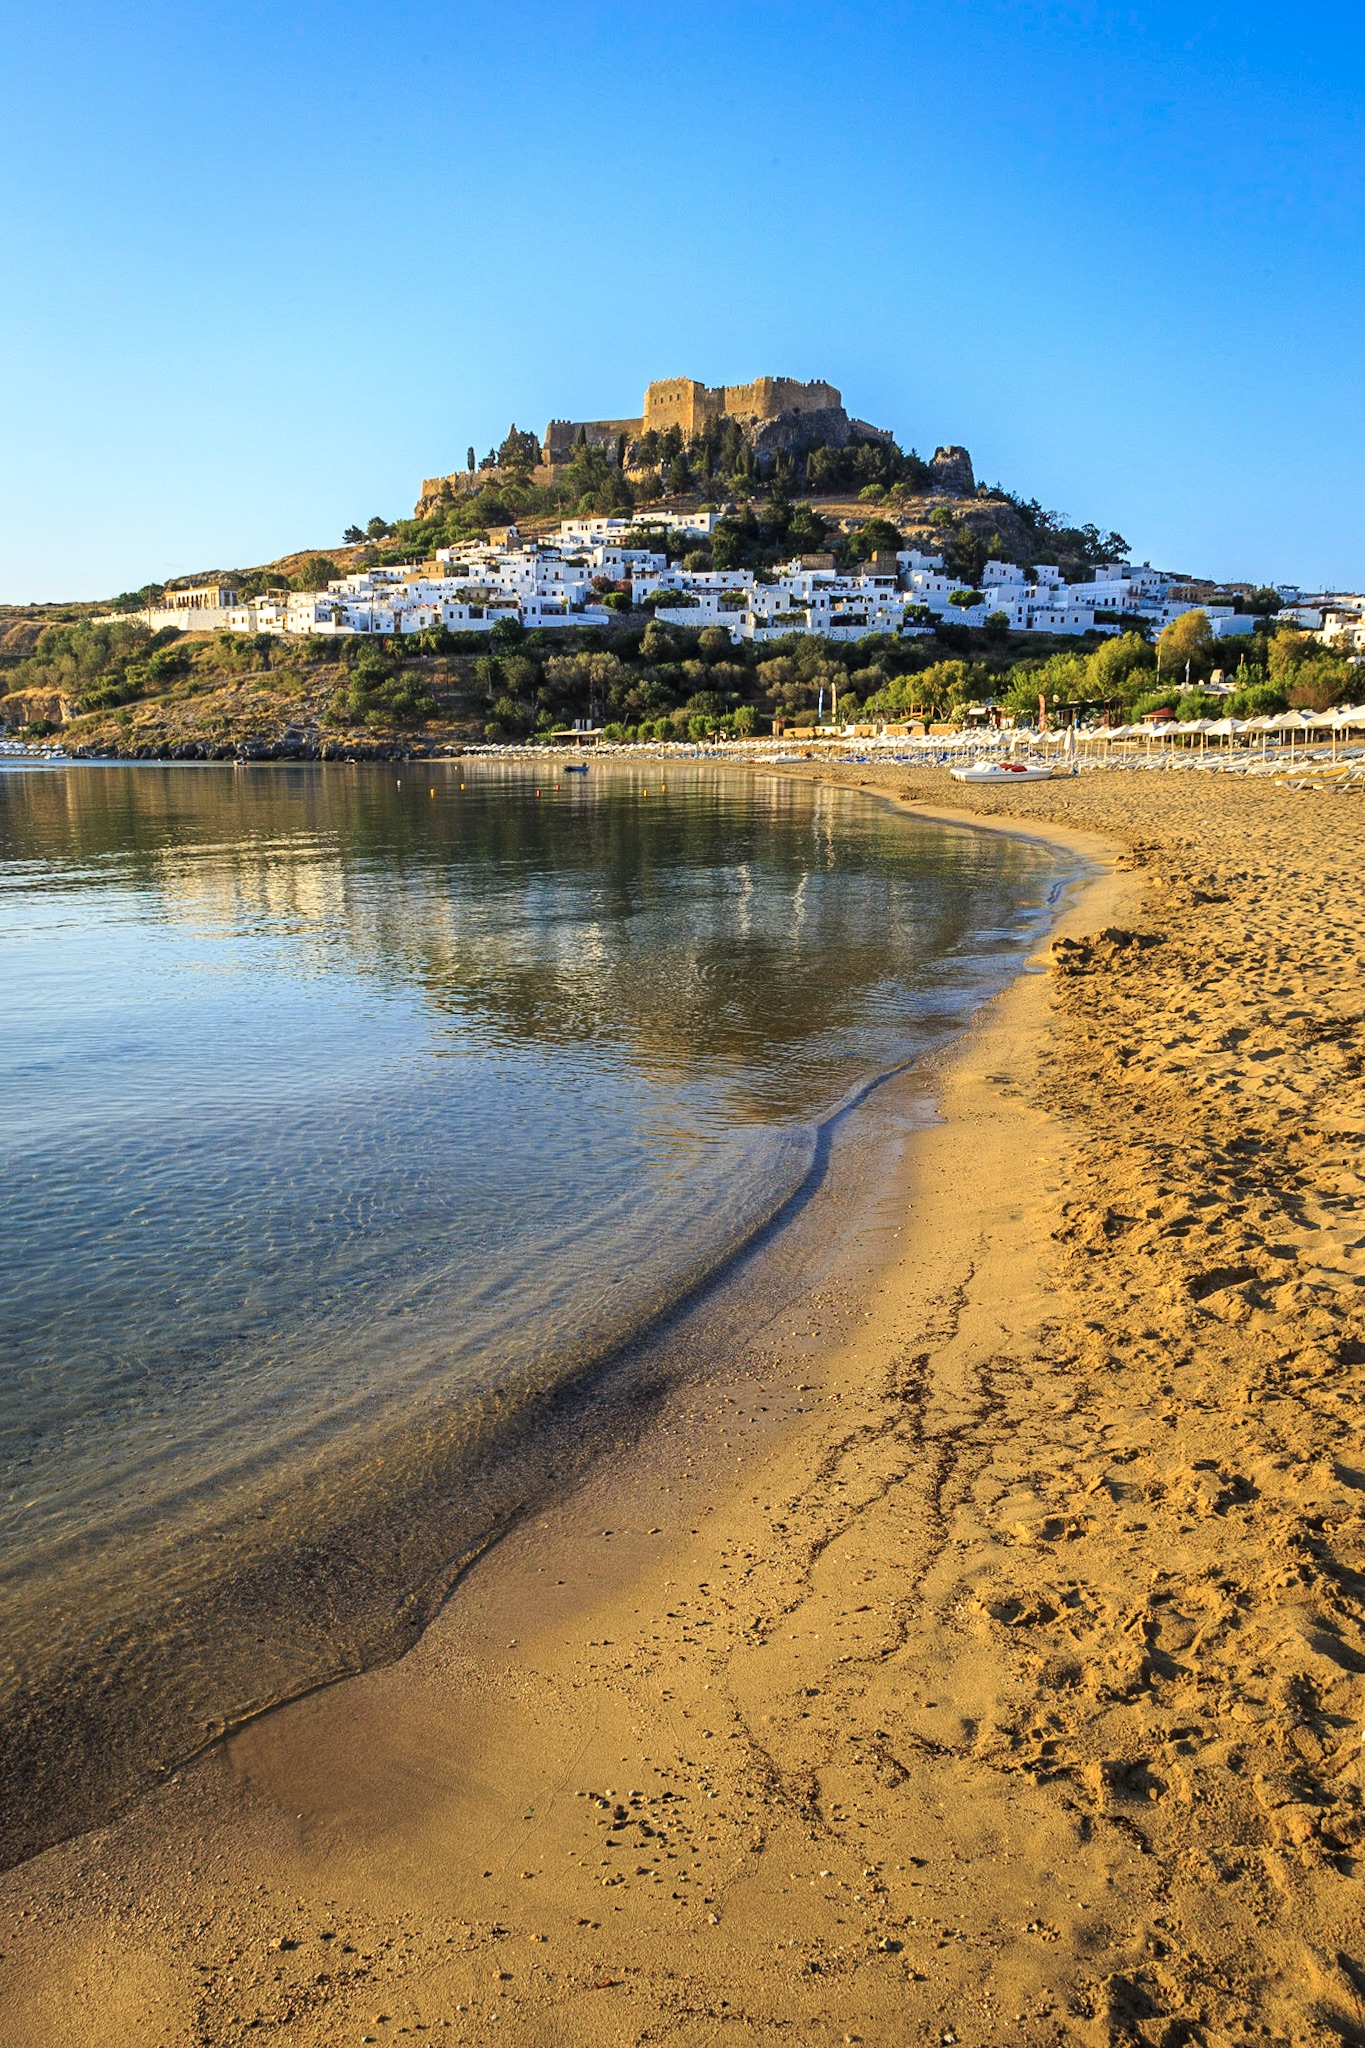 The Acropolis and Lindos beach by Rick McEvoy travel photographer